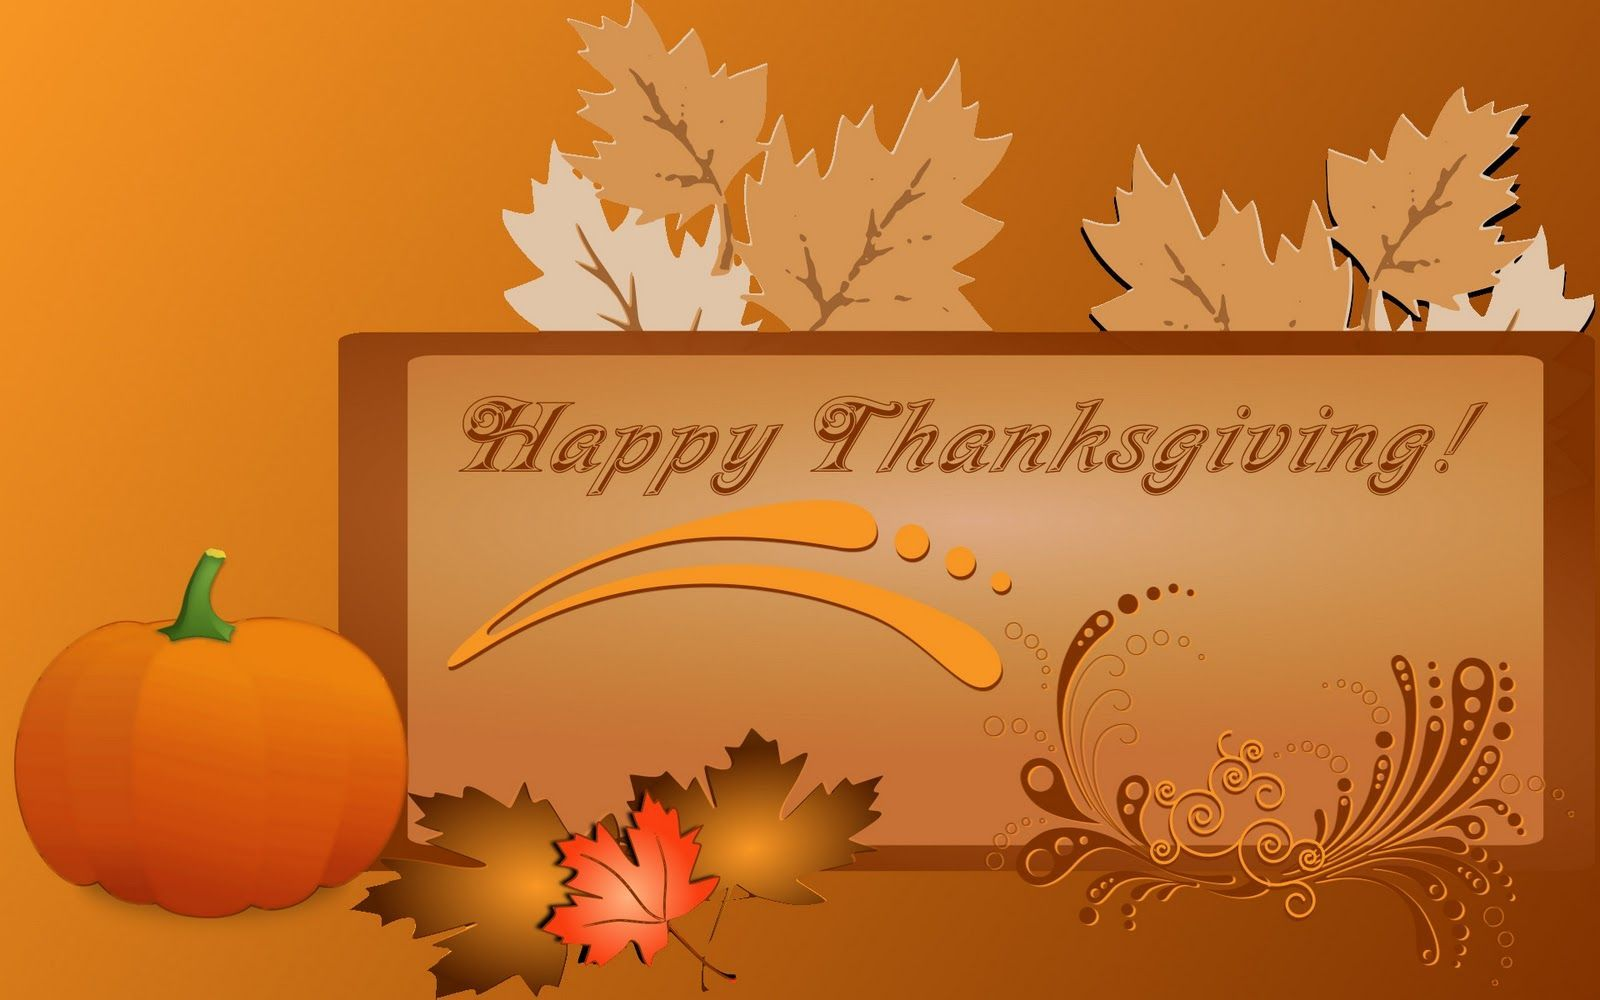 Free Thanksgiving Computer Wallpaper Backgrounds - Wallpaper Cave